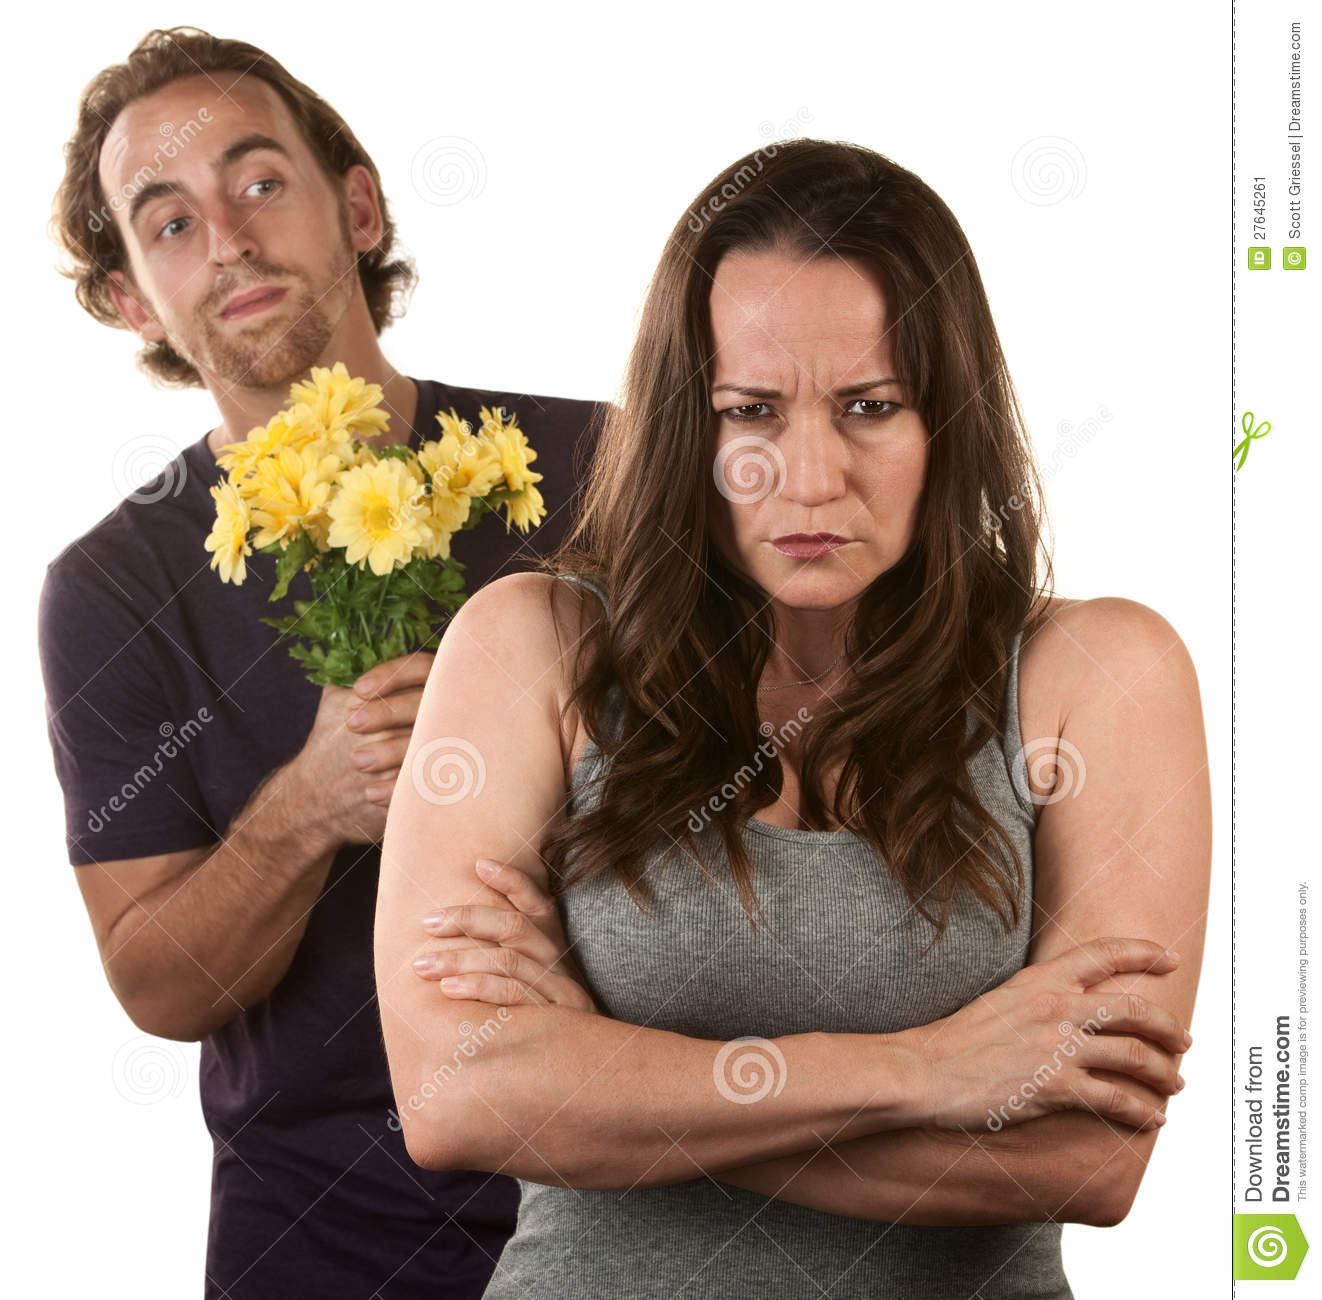 Angry Woman And Man With Flowers Stock Image - Image: 27645261